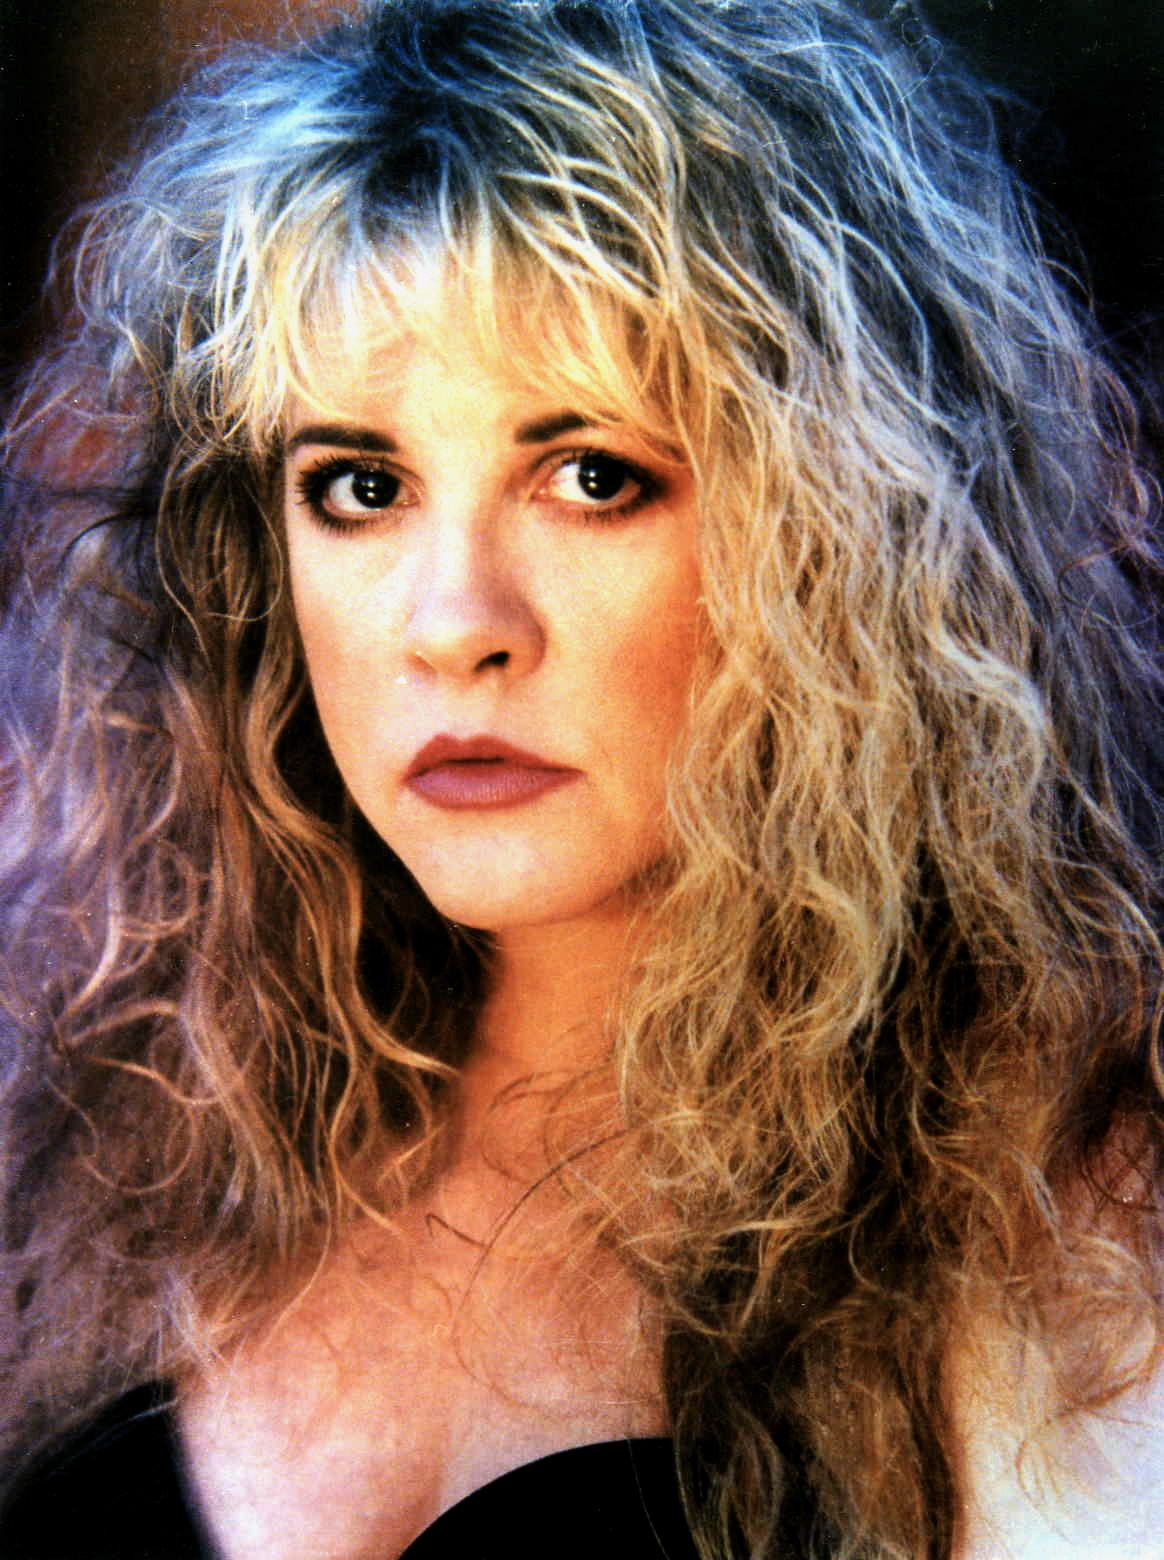 Stevie Nicks Stevie Nicks Stevie Nicks Fleetwood Mac Stevie